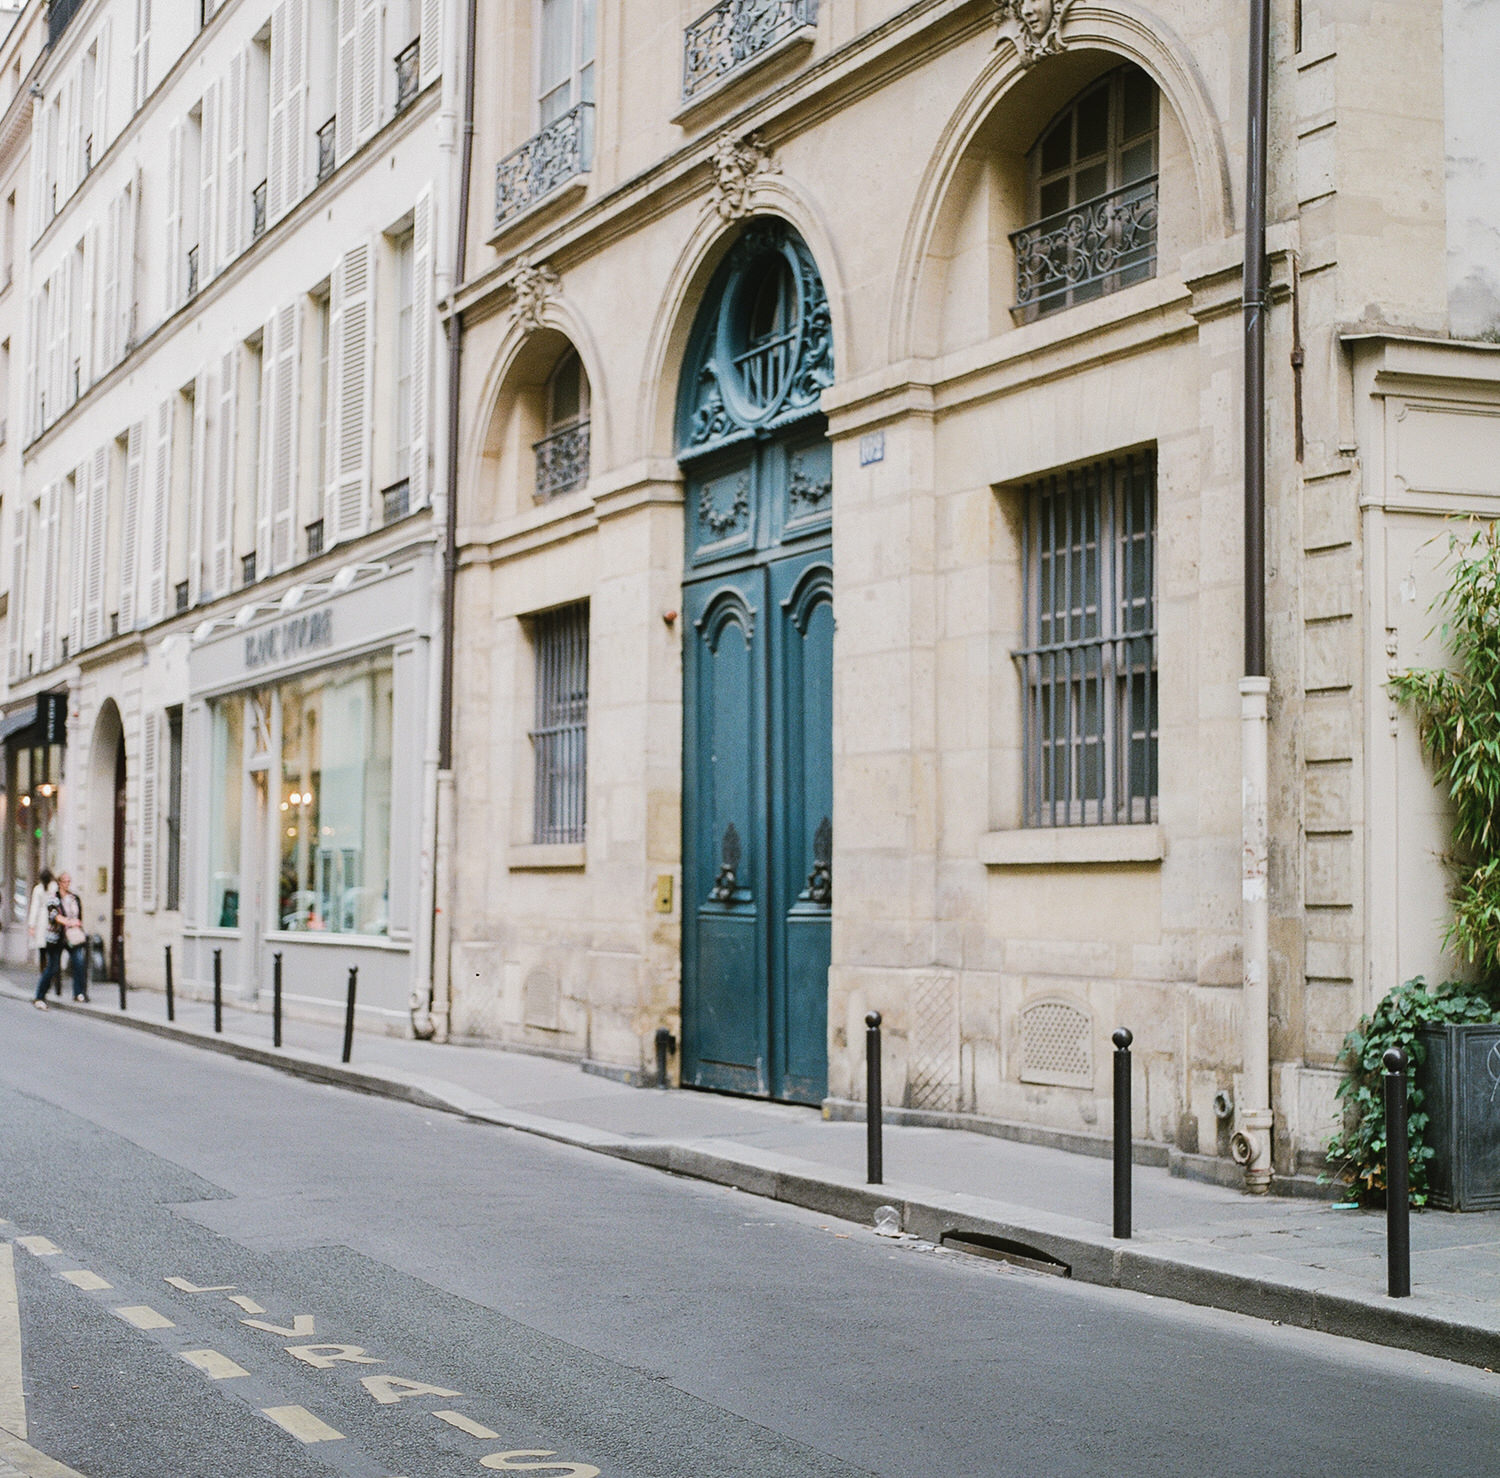 street in Paris France. Teal blue door. Photo by Judith Rae.